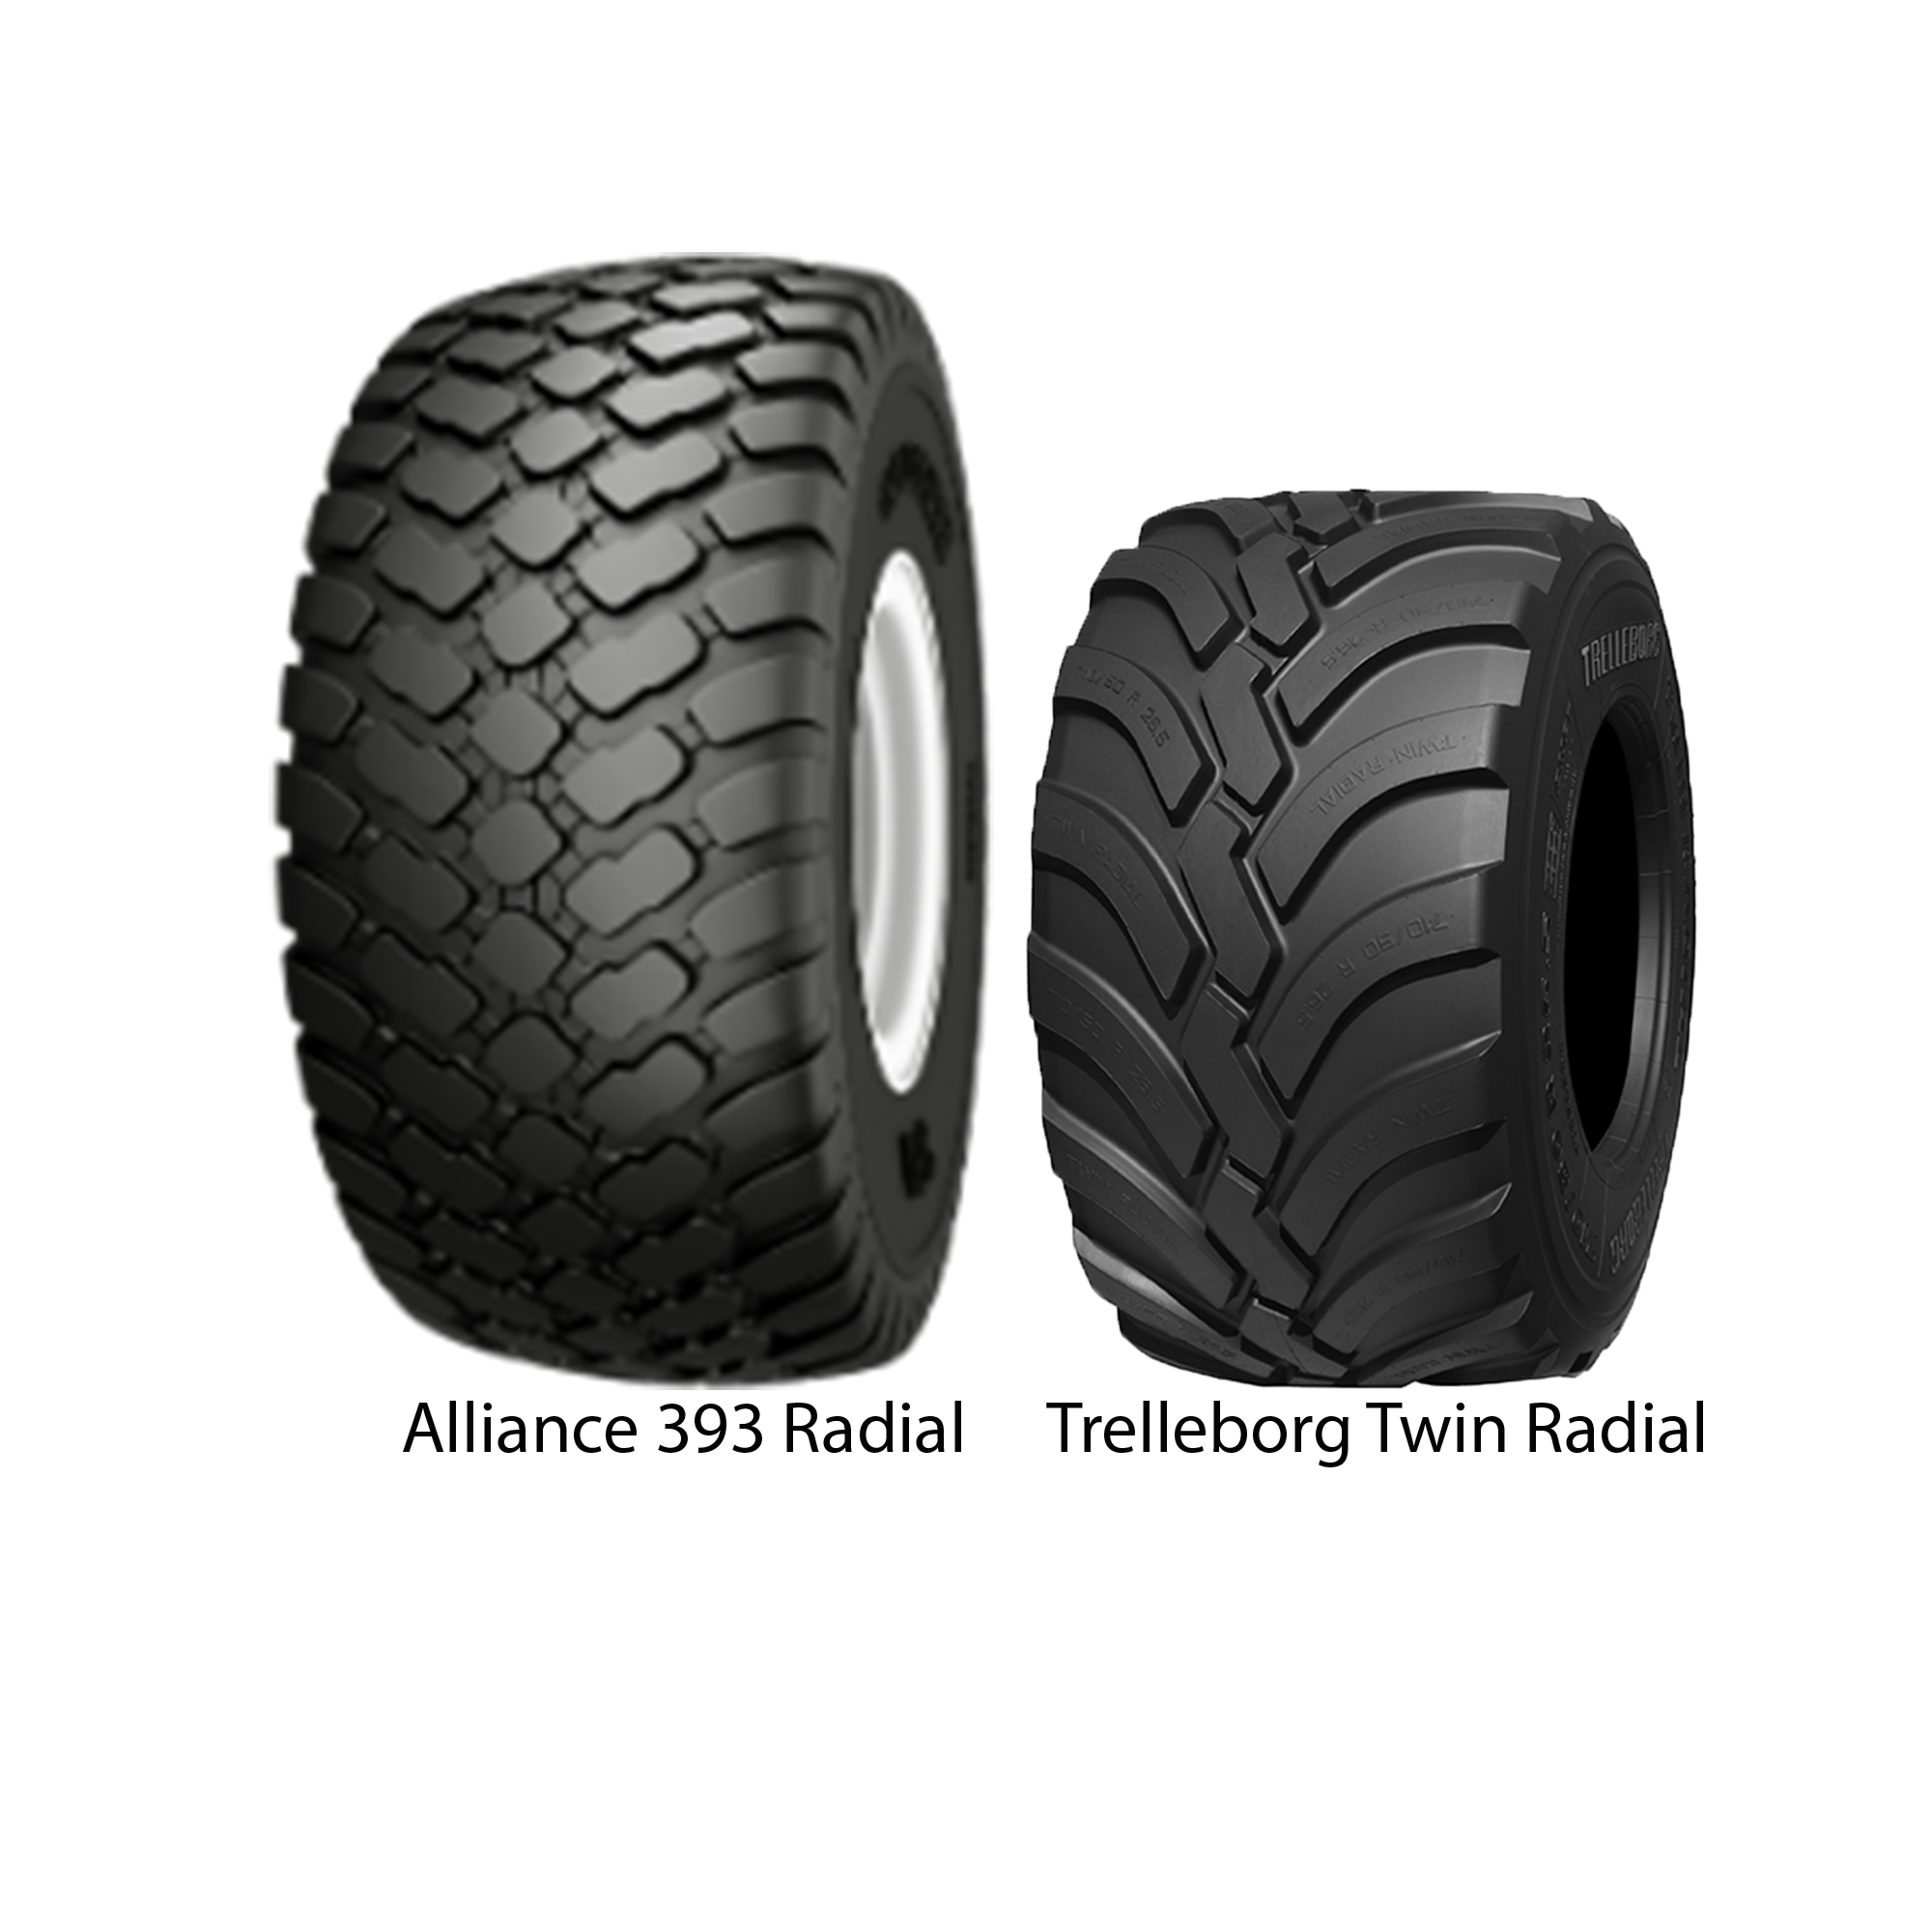 Alliance Tire and Trelleborg Tire